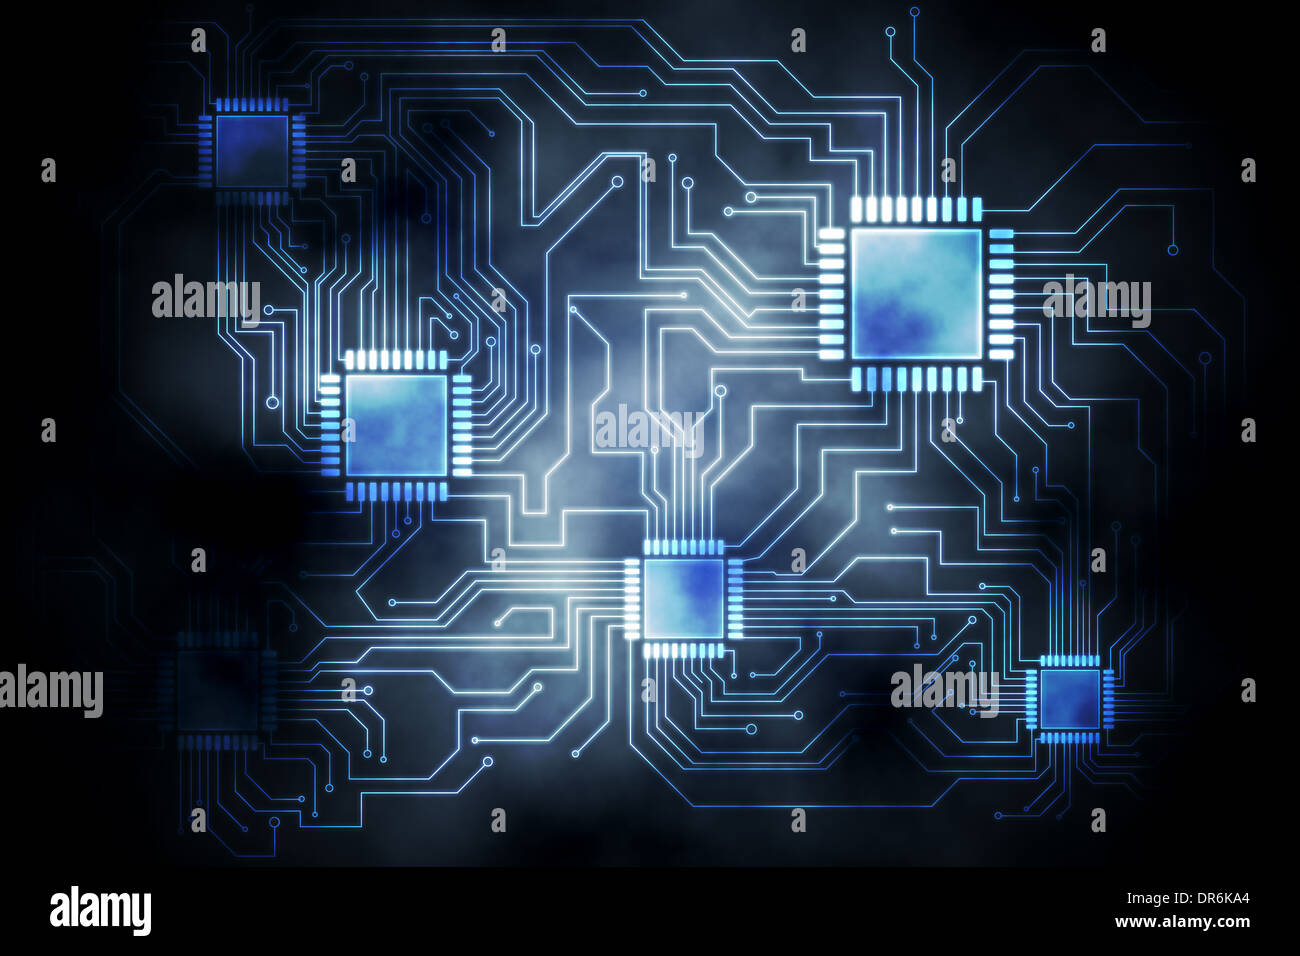 Circuit board graphic Stock Photo: 65915084 - Alamy